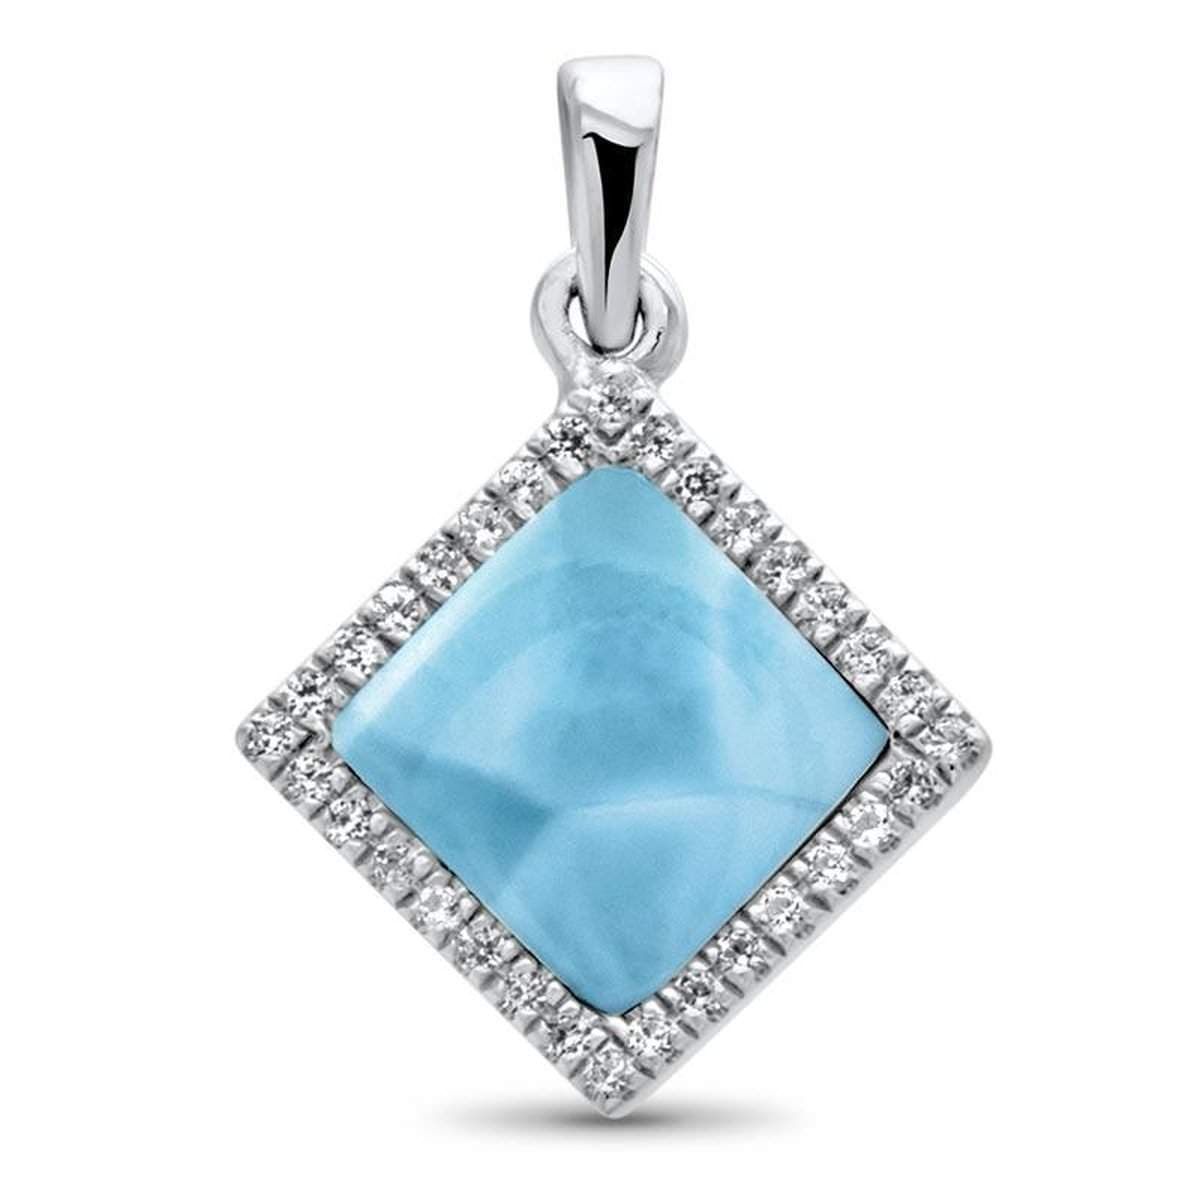 Echo Square White Sapphire Necklace - Necho03-00-Marahlago Larimar-Renee Taylor Gallery